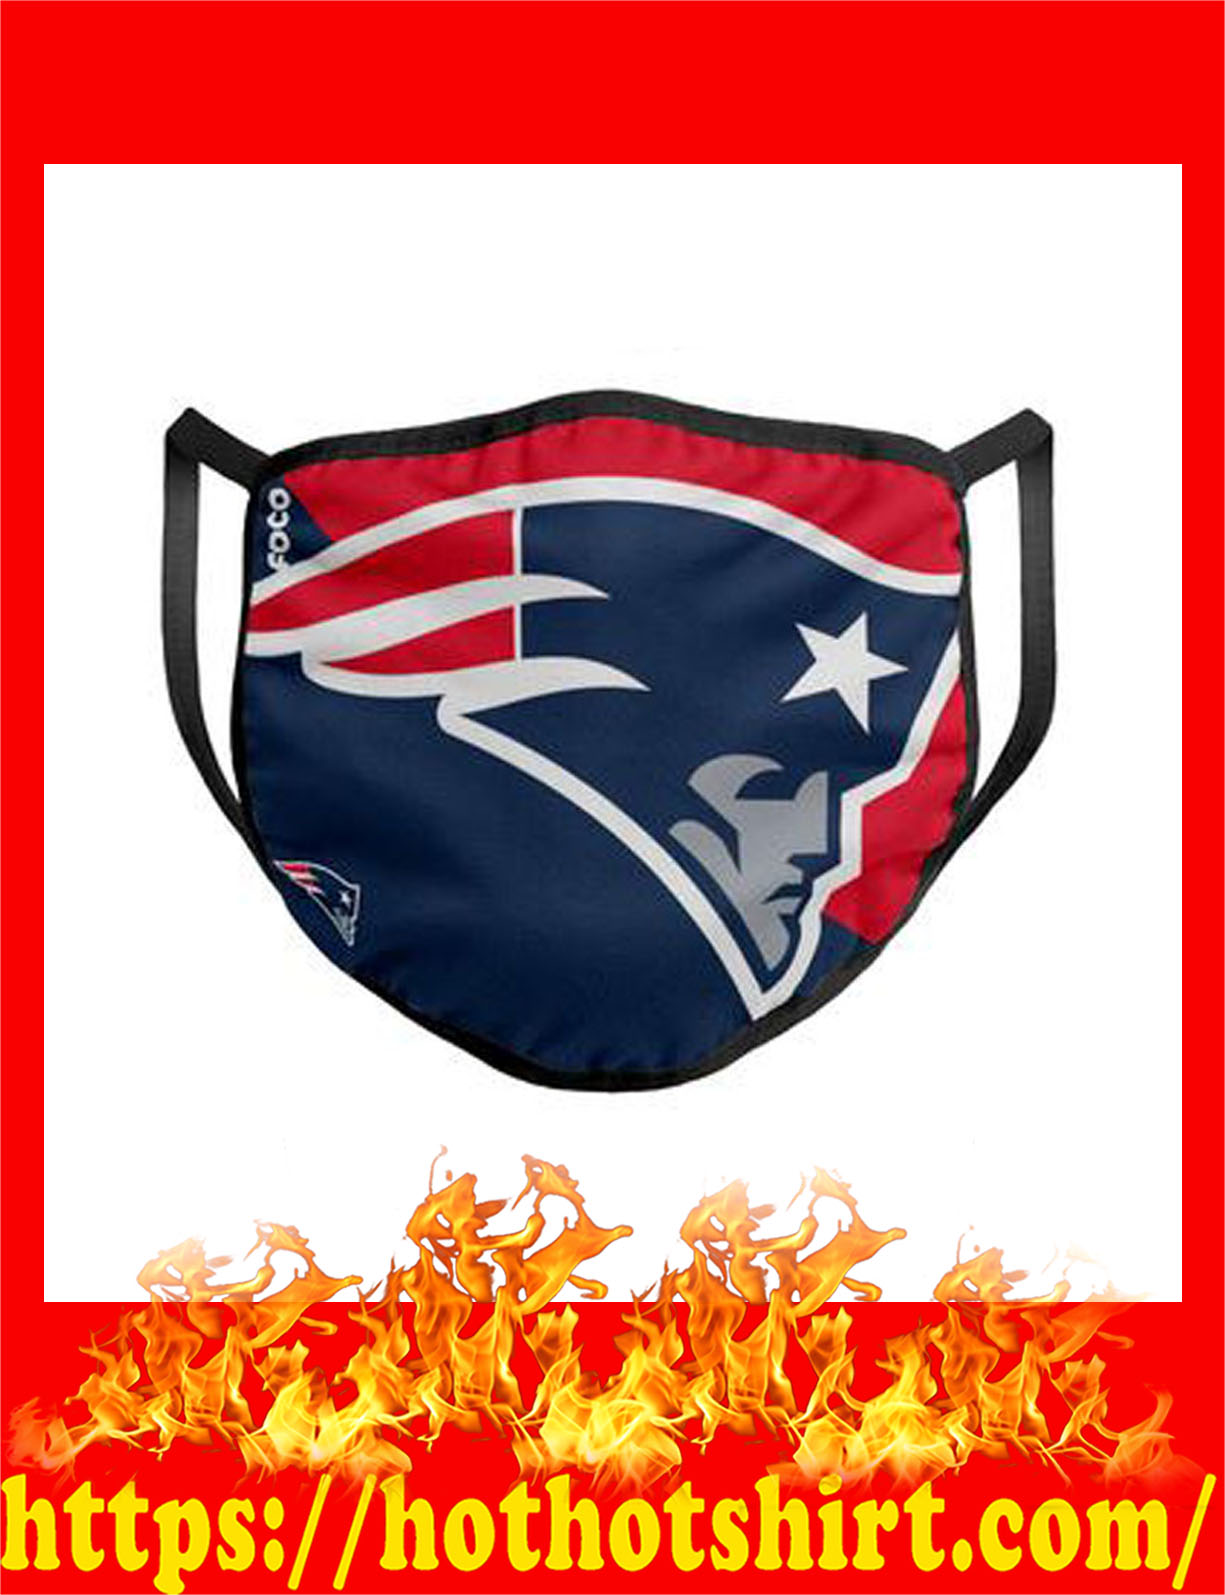 new england patriots nfl cloth mask - detail